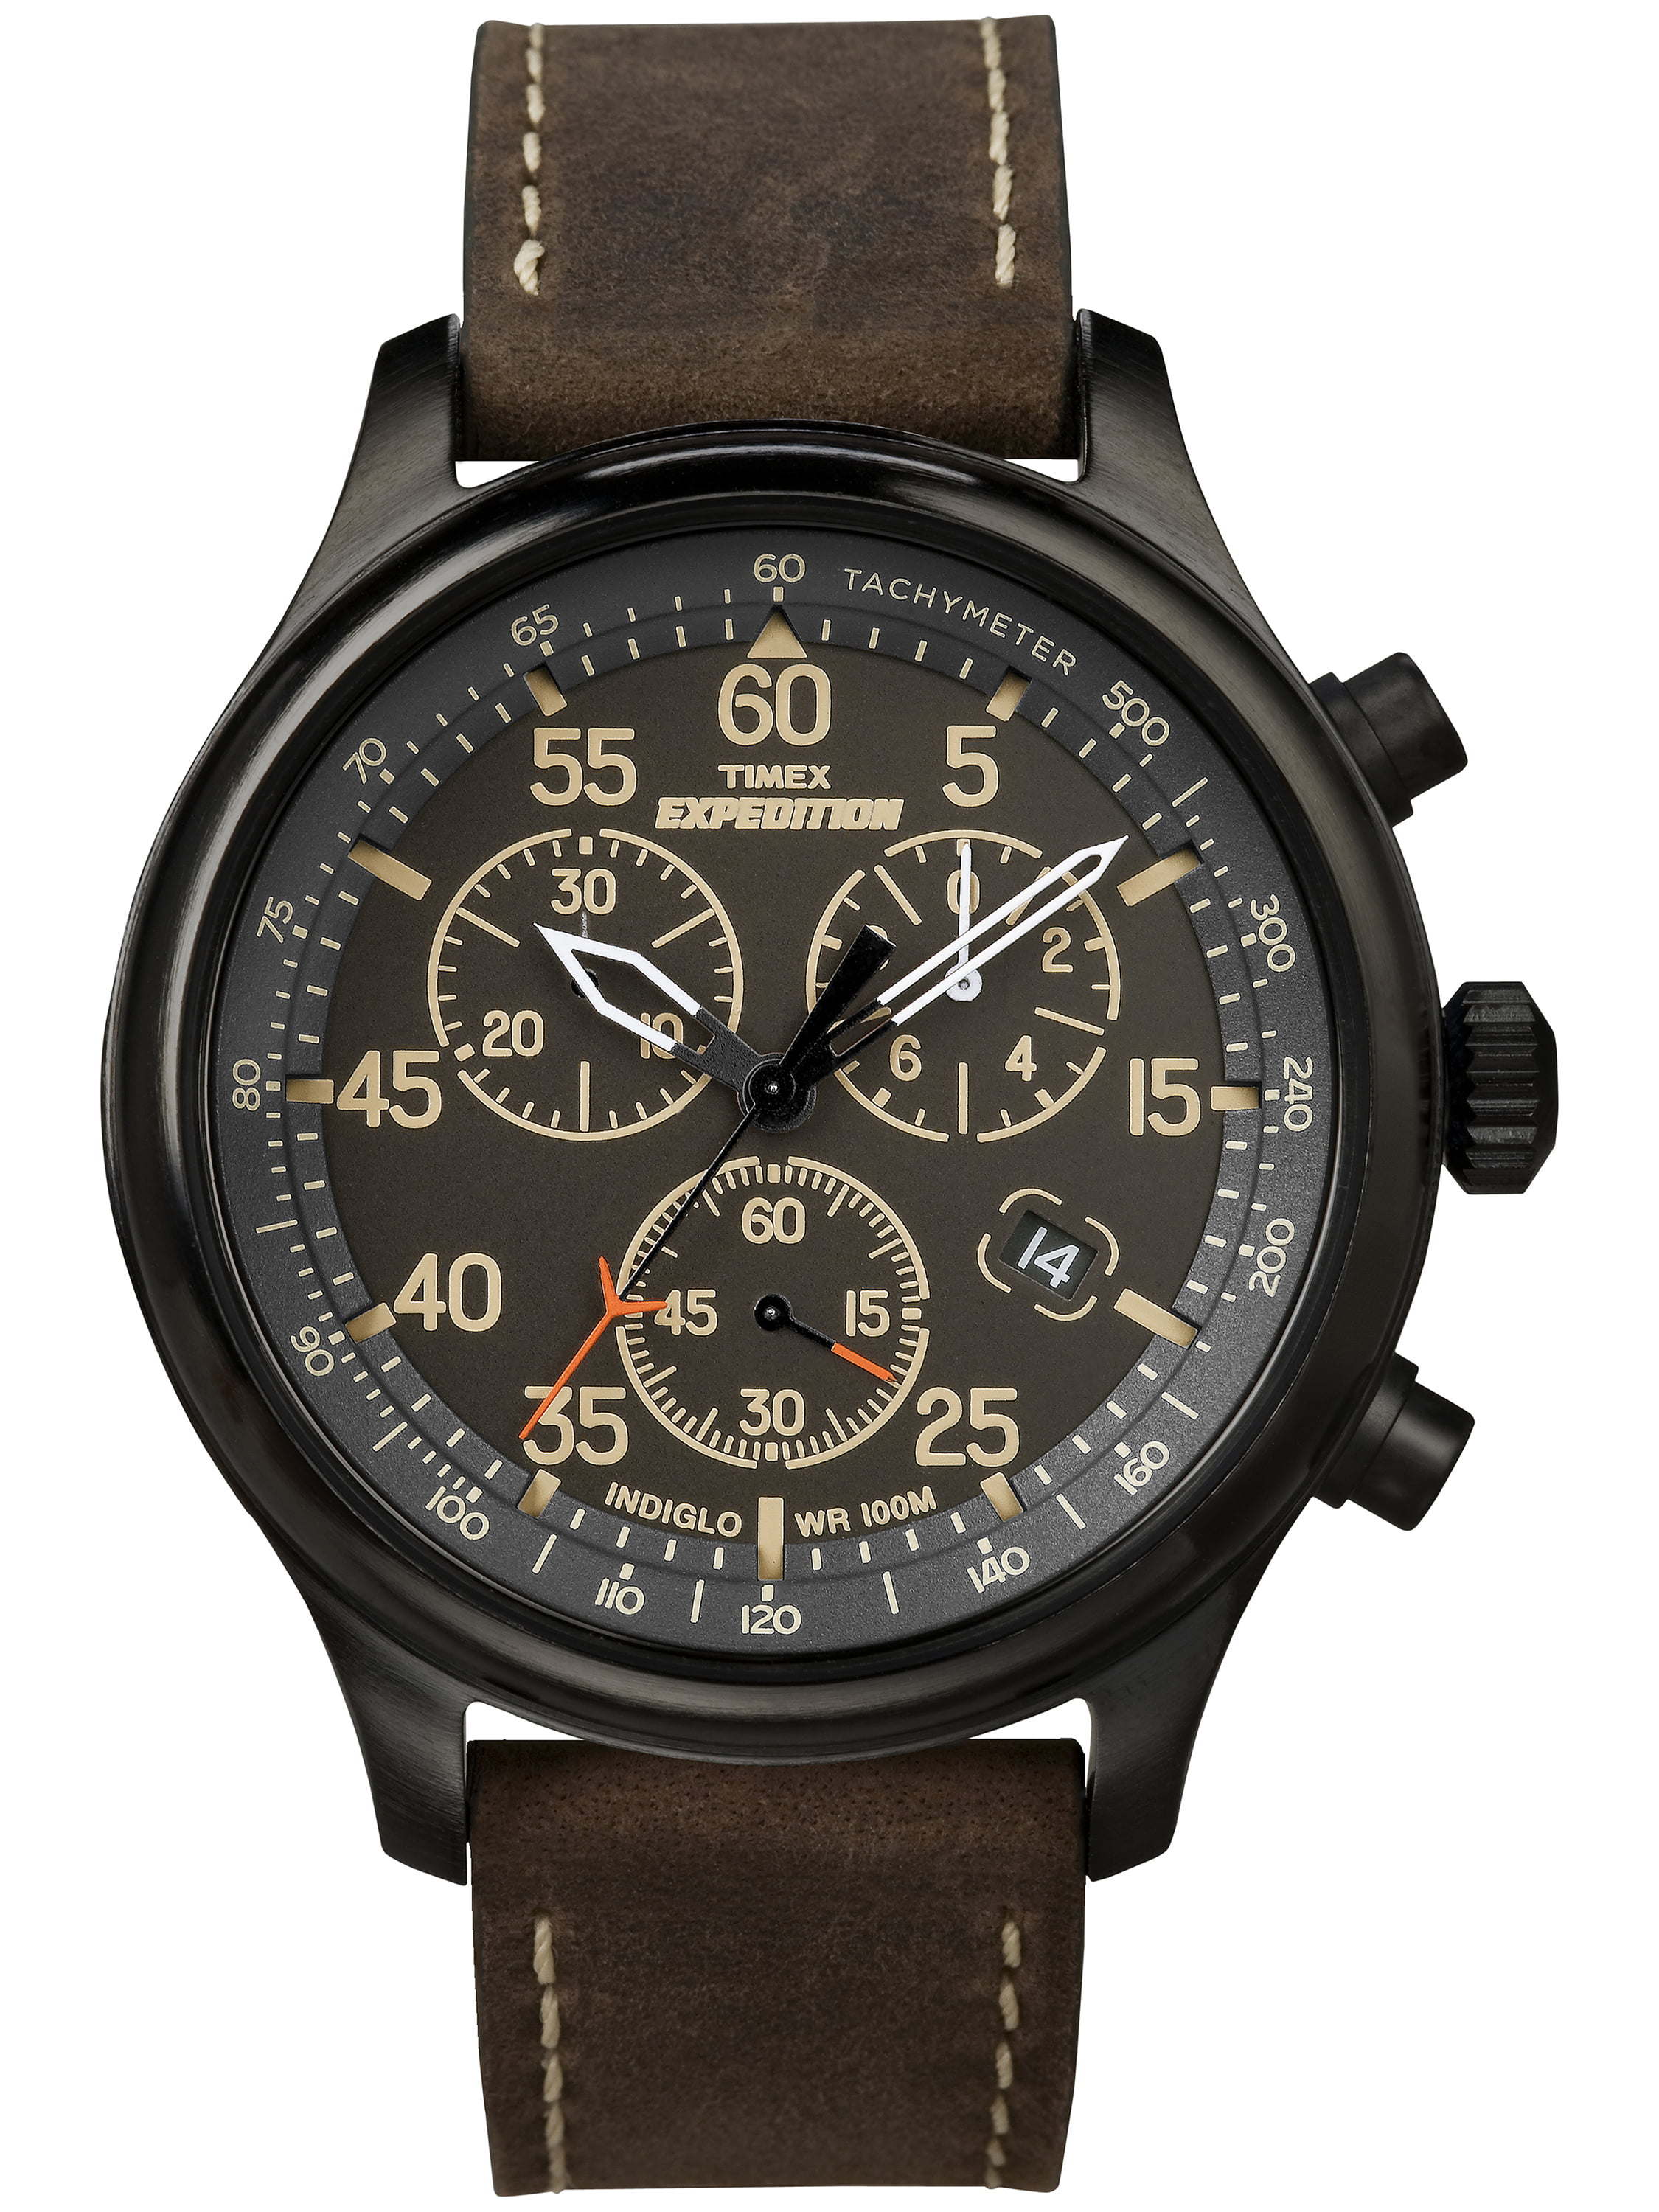 Timex Men's Expedition Field Chronograph Watch, Brown Leather Strap by Timex